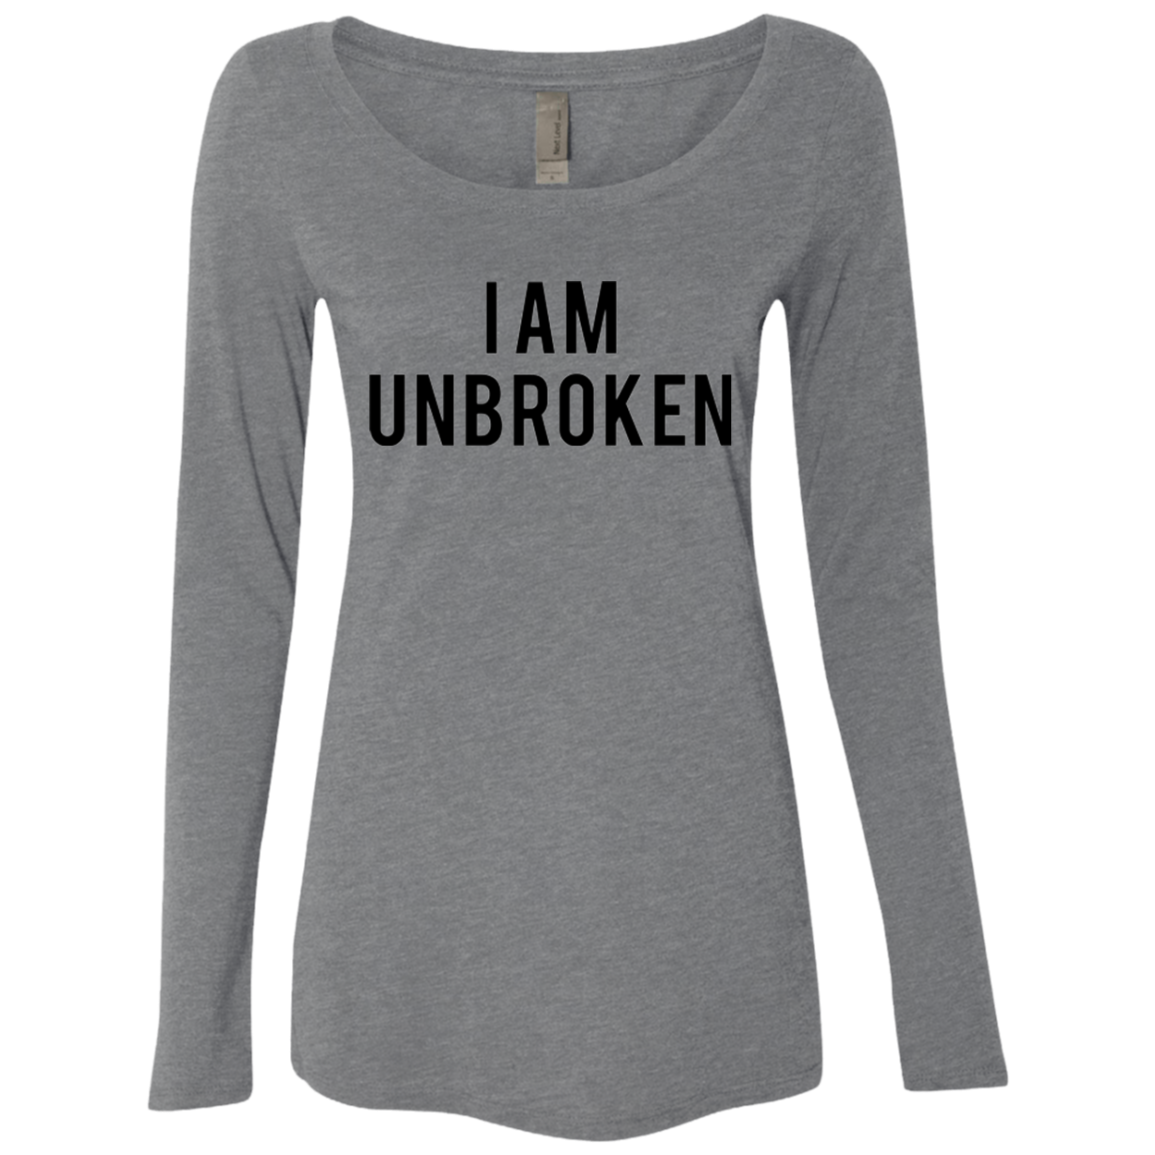 I Am Unbroken Women's Long Sleeve Tee - Trendy Tees